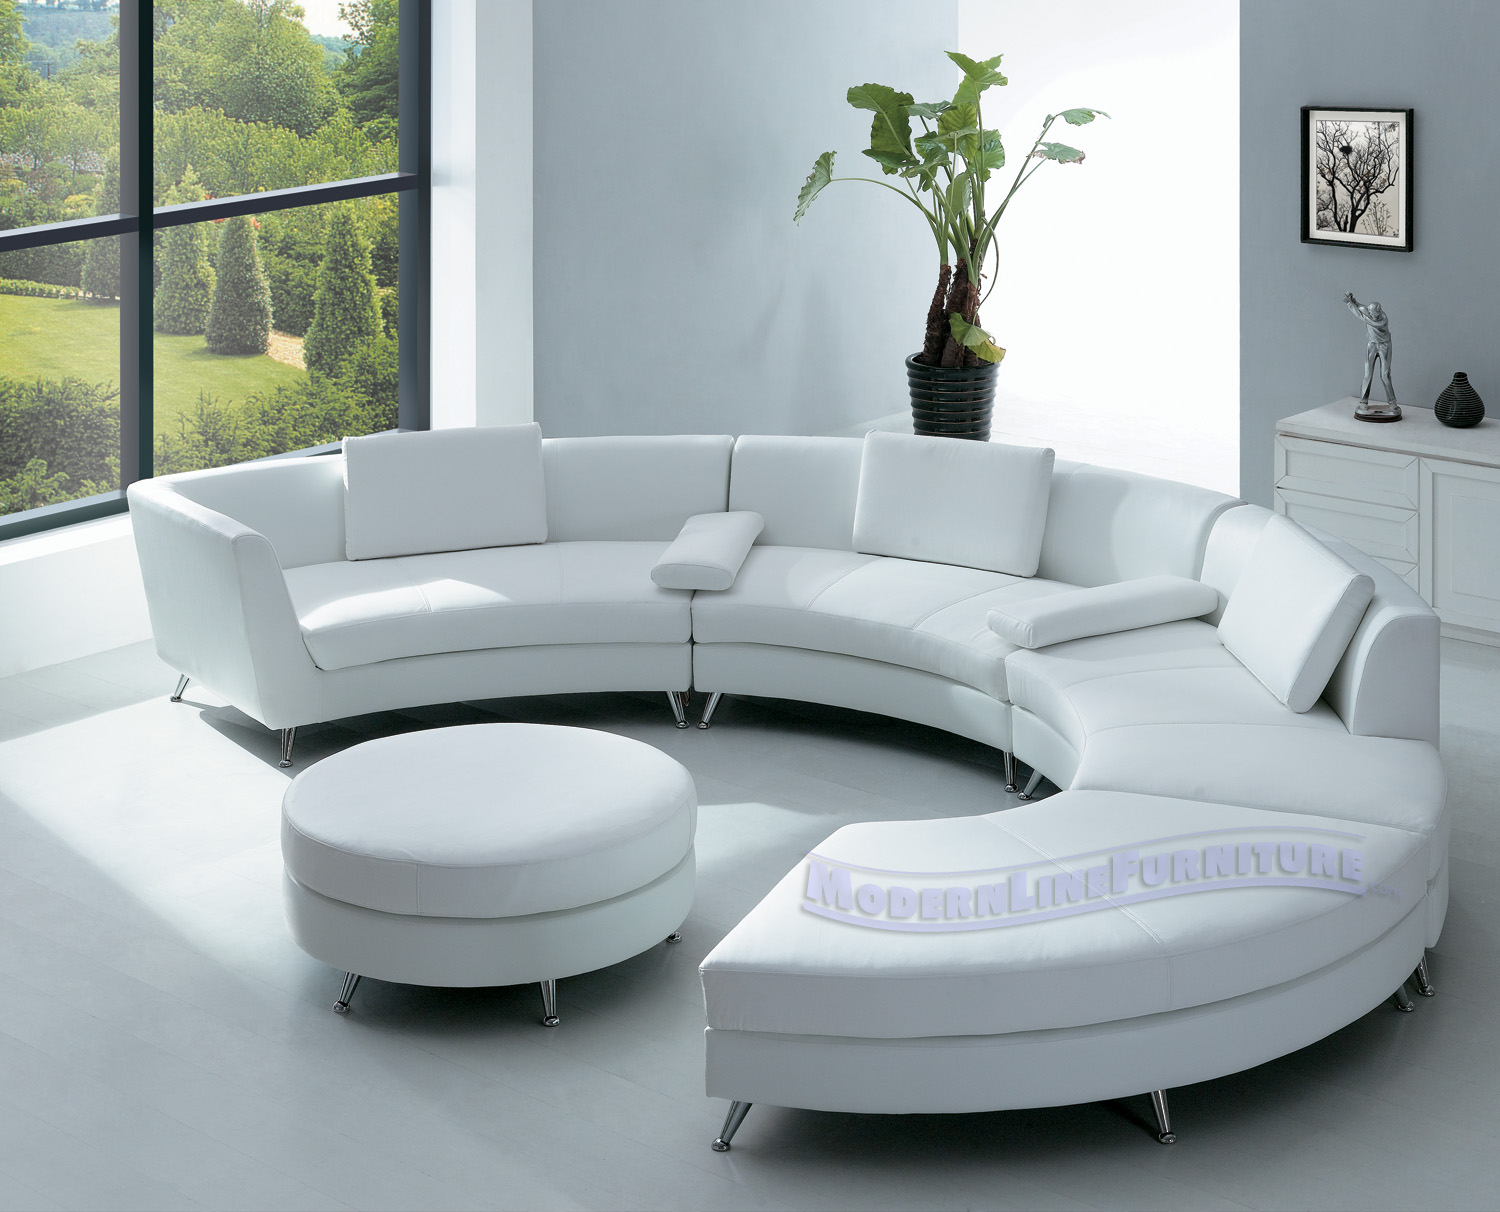 beautiful couch/ sofa designs, stylish,trendy, elegant, latest, images  title=